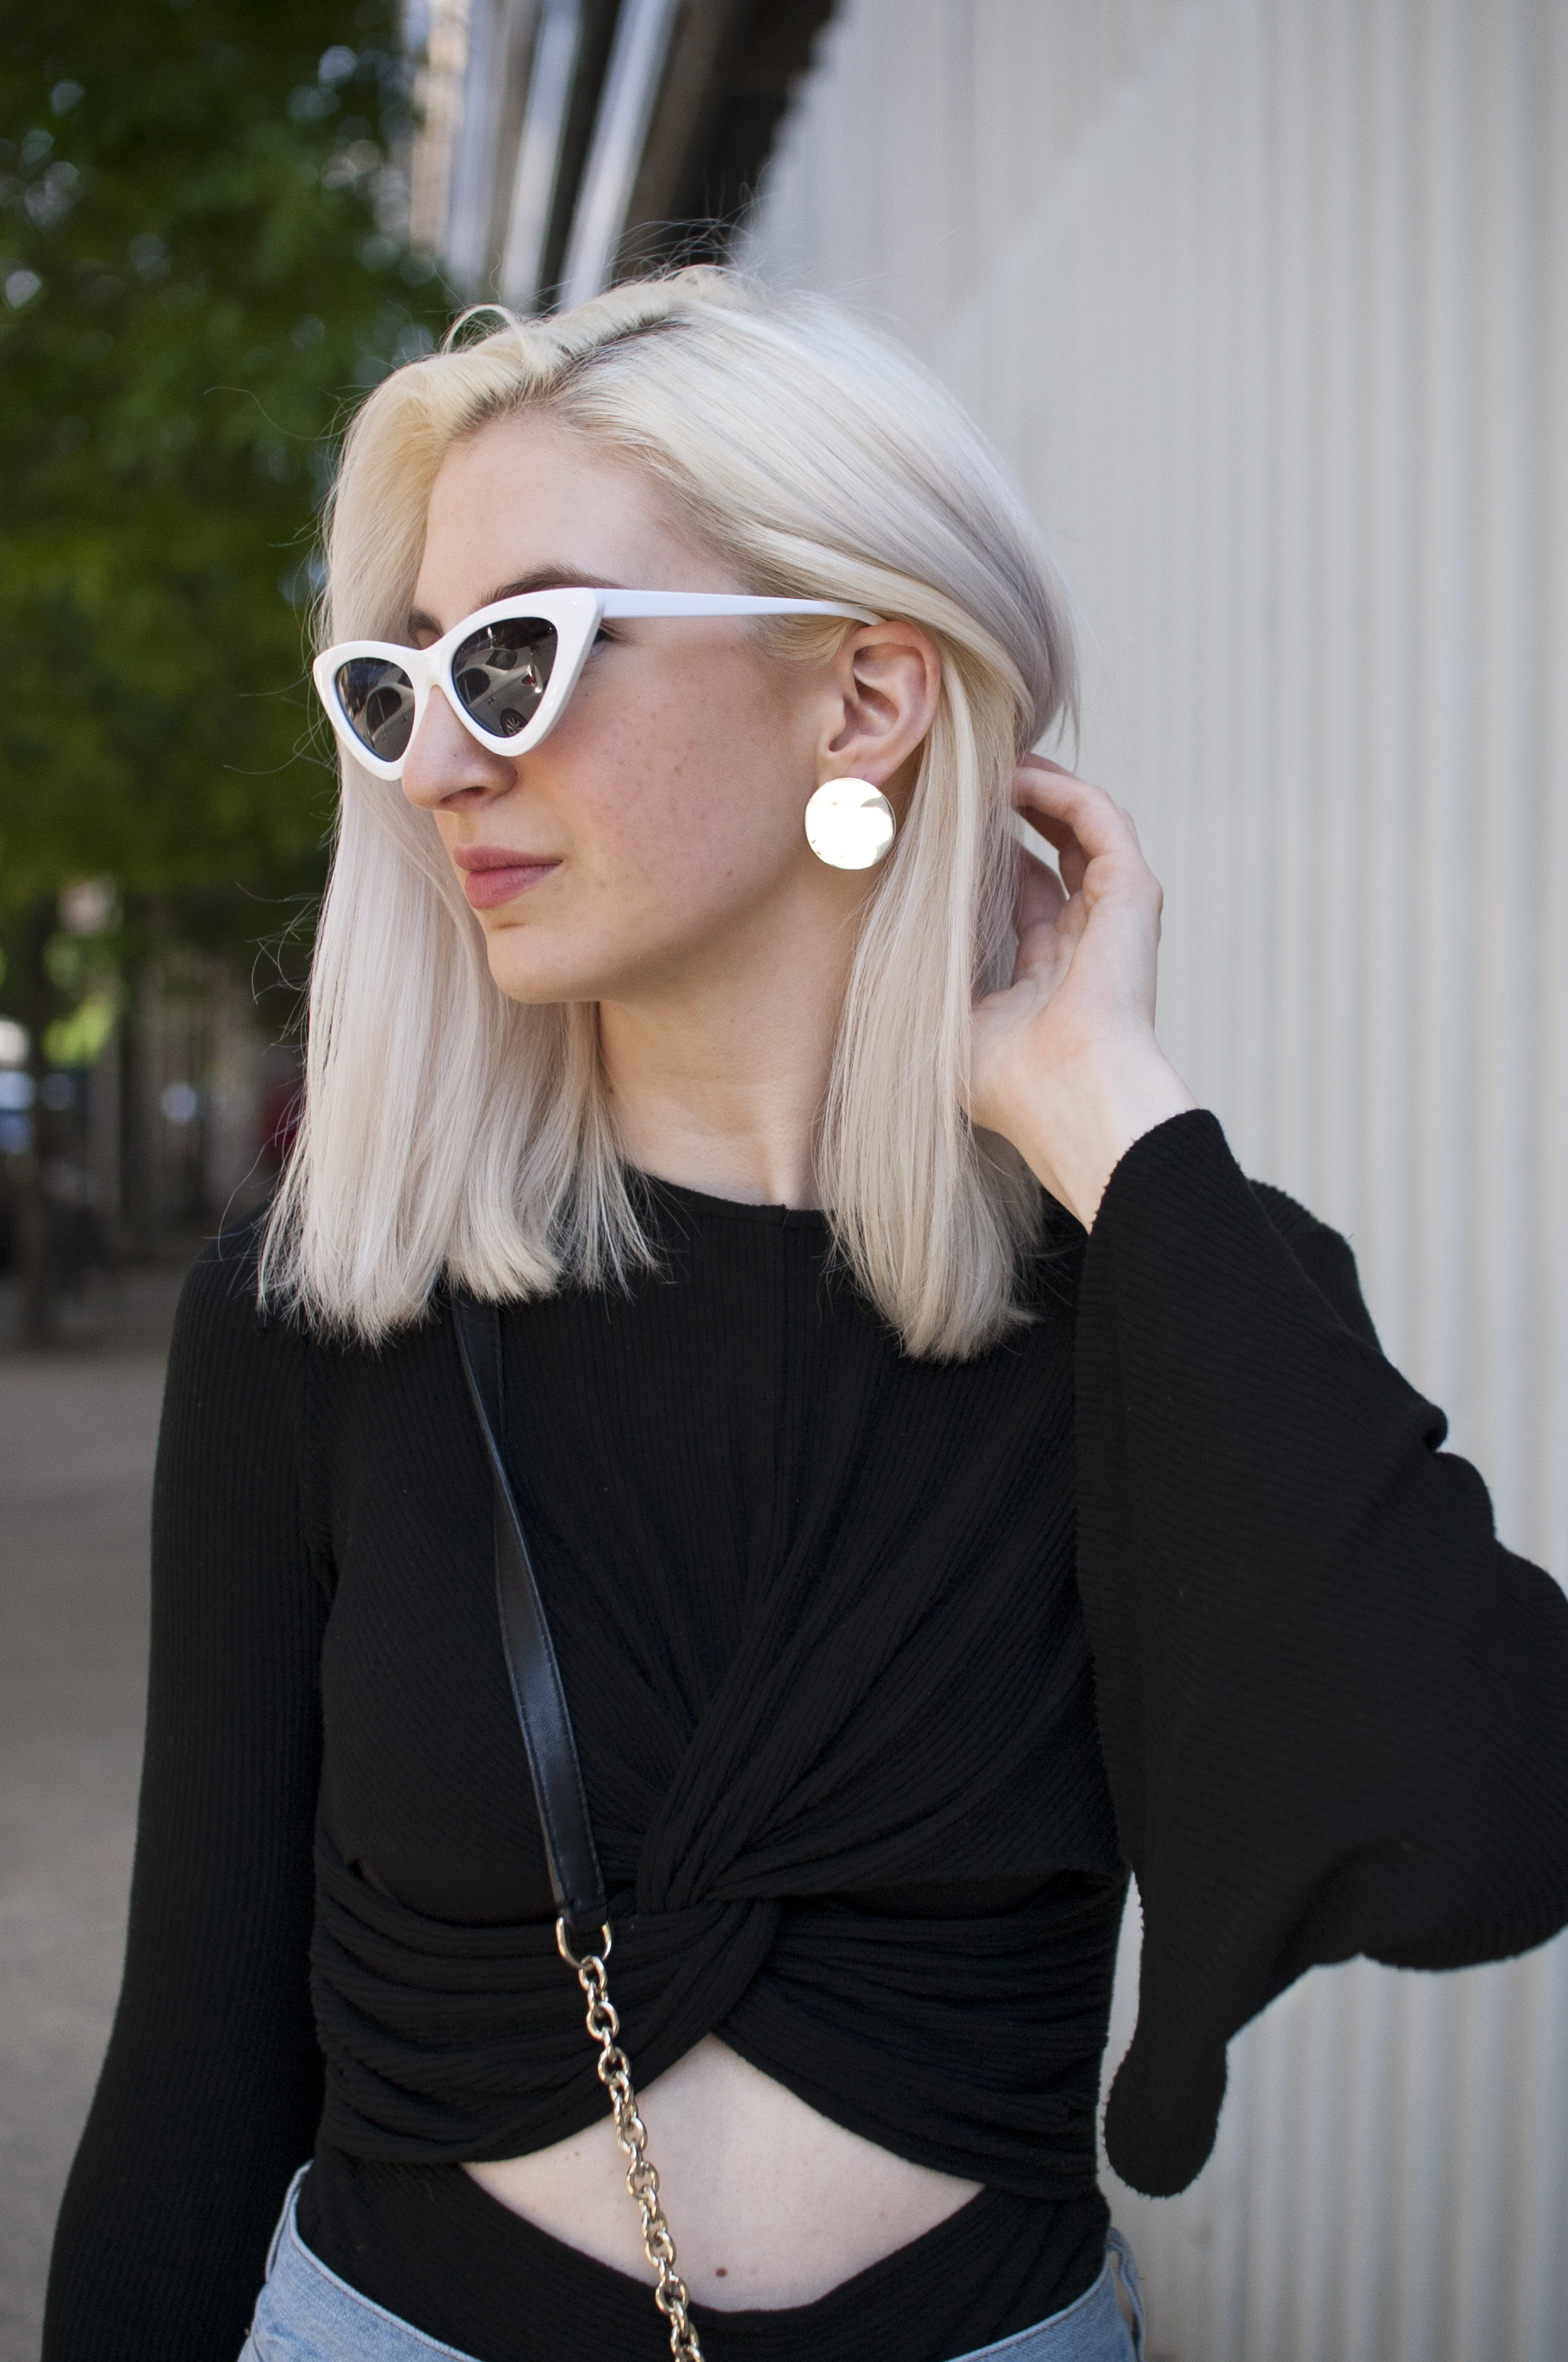 mom jeans outfit, boyfriend jeans outfit, cushnie et ochs, bell sleeve top, block heel mules, heeled mule sandals, cat eye sunglasses, white sunglasses, summer outfit inspiration, audra koch